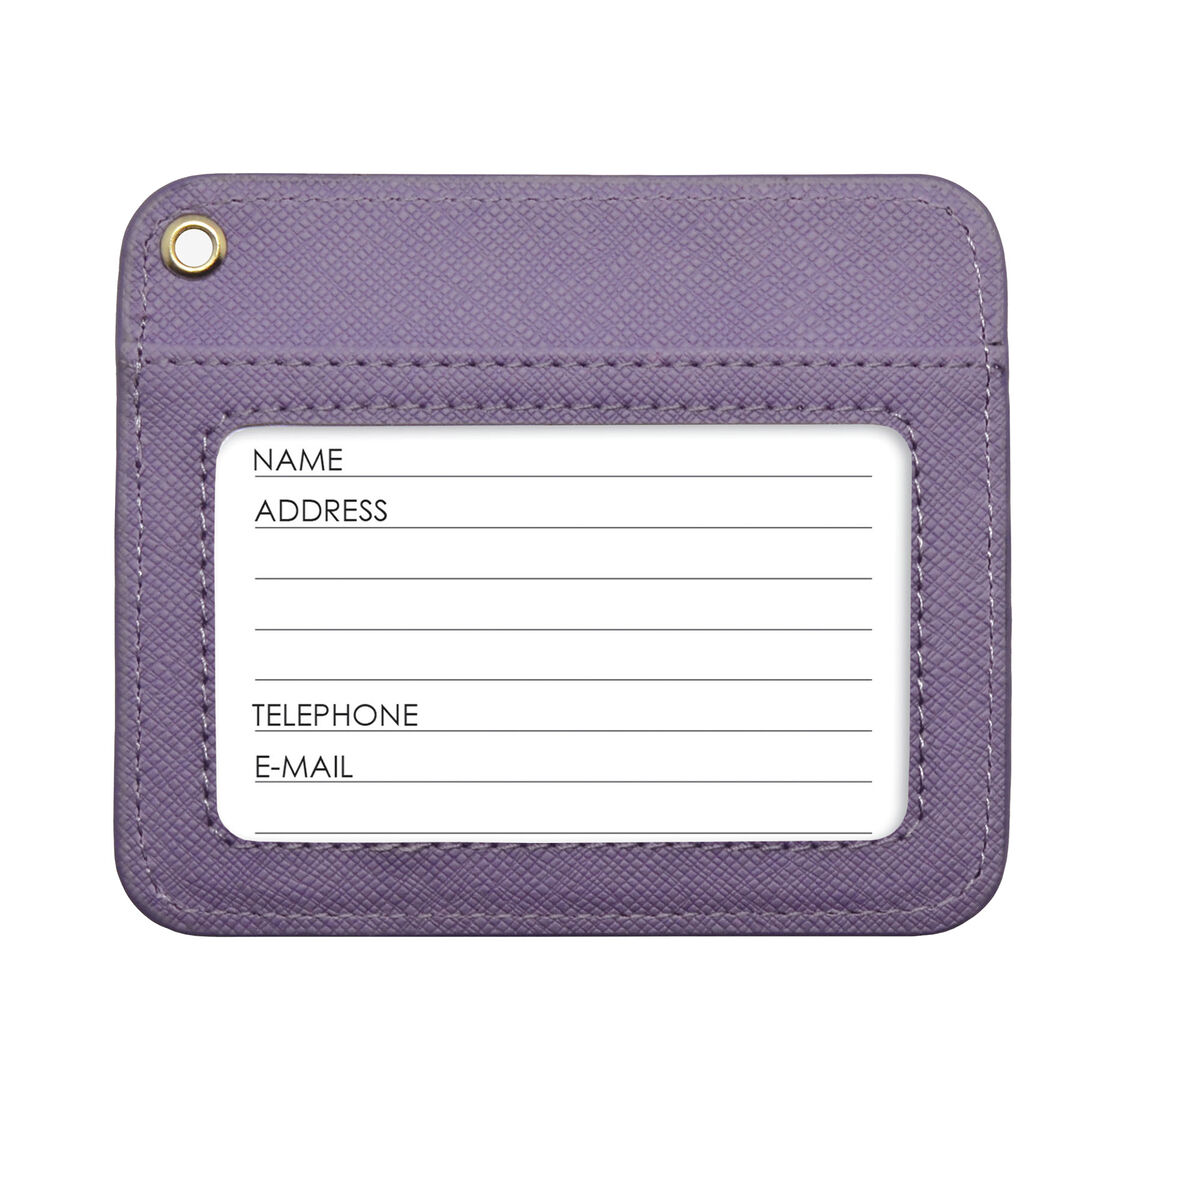 PORTA BADGE - LILAC, , zoom